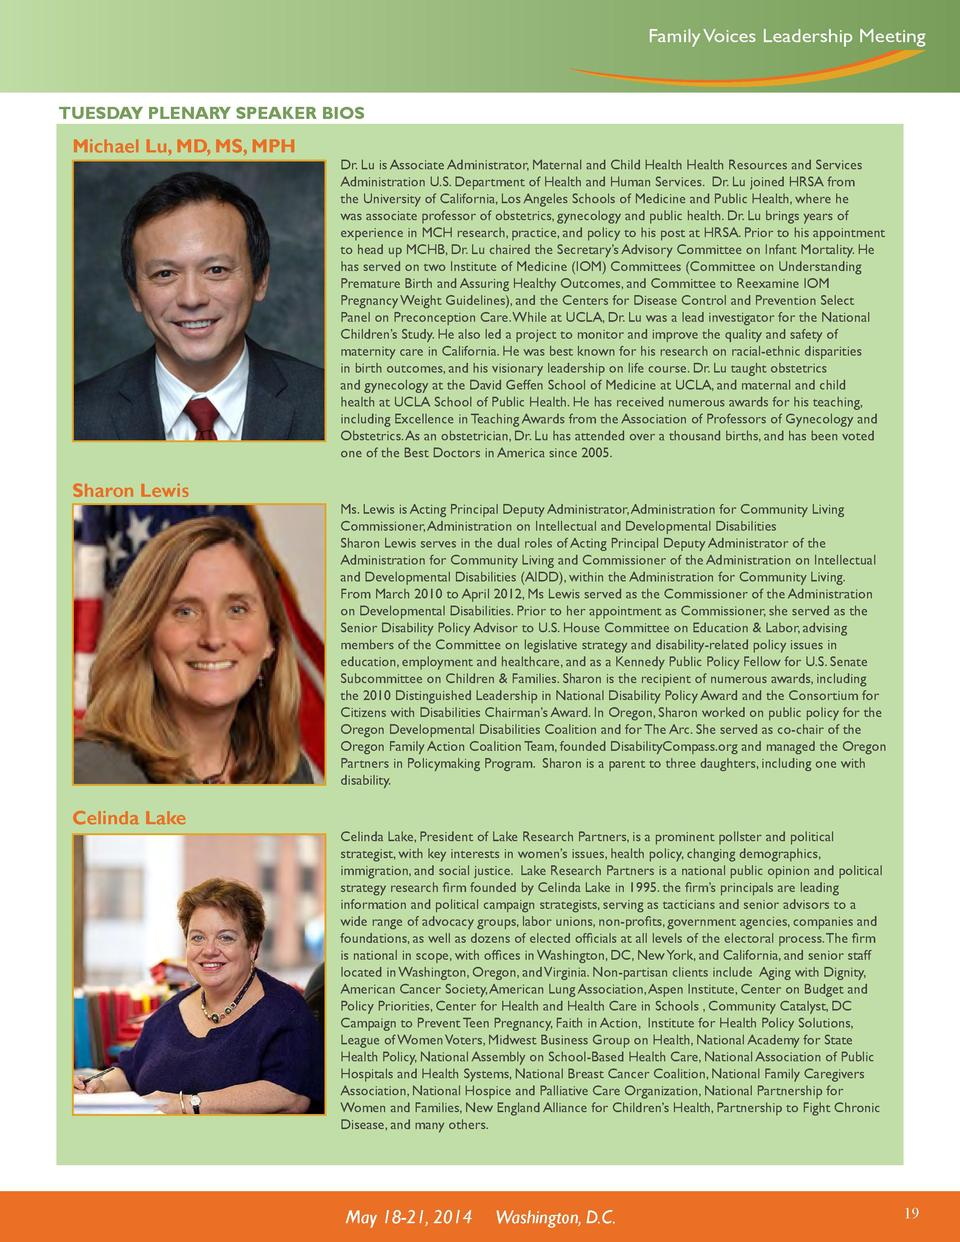 Family Voices Leadership Meeting  TUESDAY PLENARY SPEAKER BIOS  Michael Lu, MD, MS, MPH  Sharon Lewis  Celinda Lake  Dr. L...